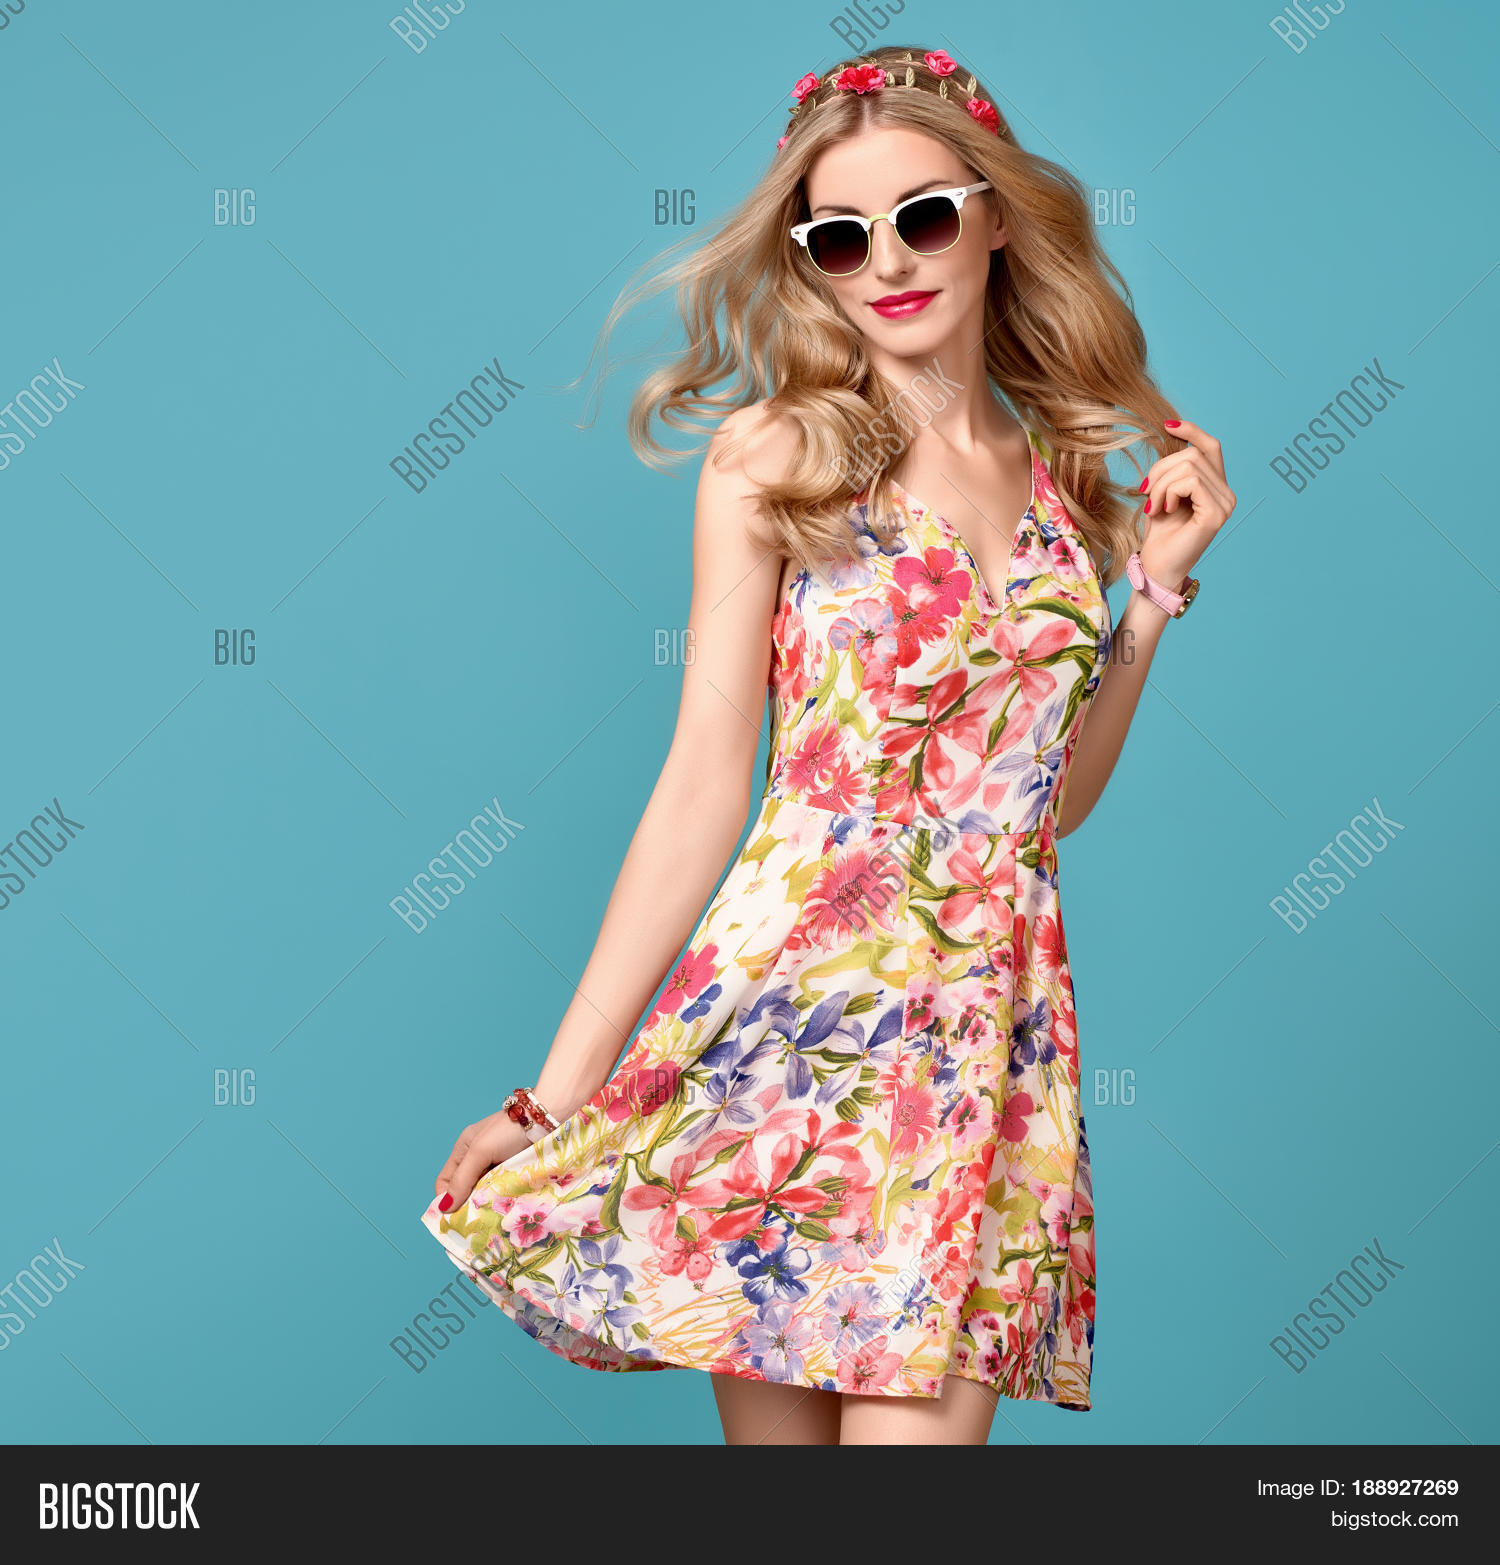 6c7c3502b Fashion Beauty. Sensual Sexy Blond Model in fashion pose Smiling. Woman in Summer  Outfit